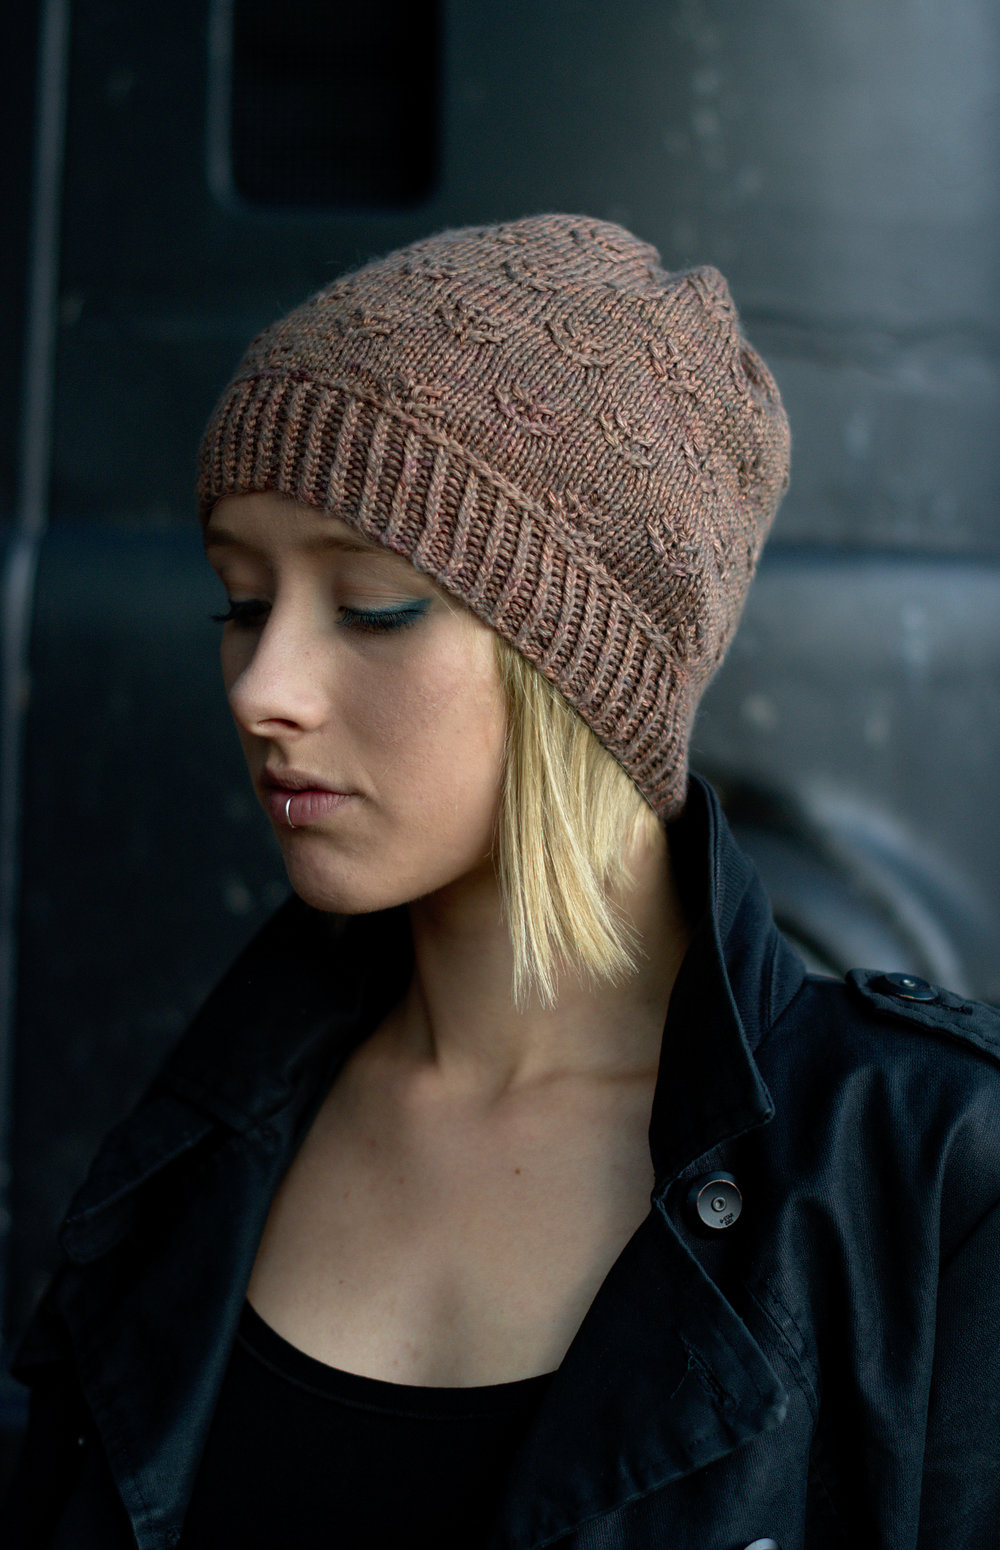 Ponderosa hand knit slouch beanie hat pattern for DK yarn